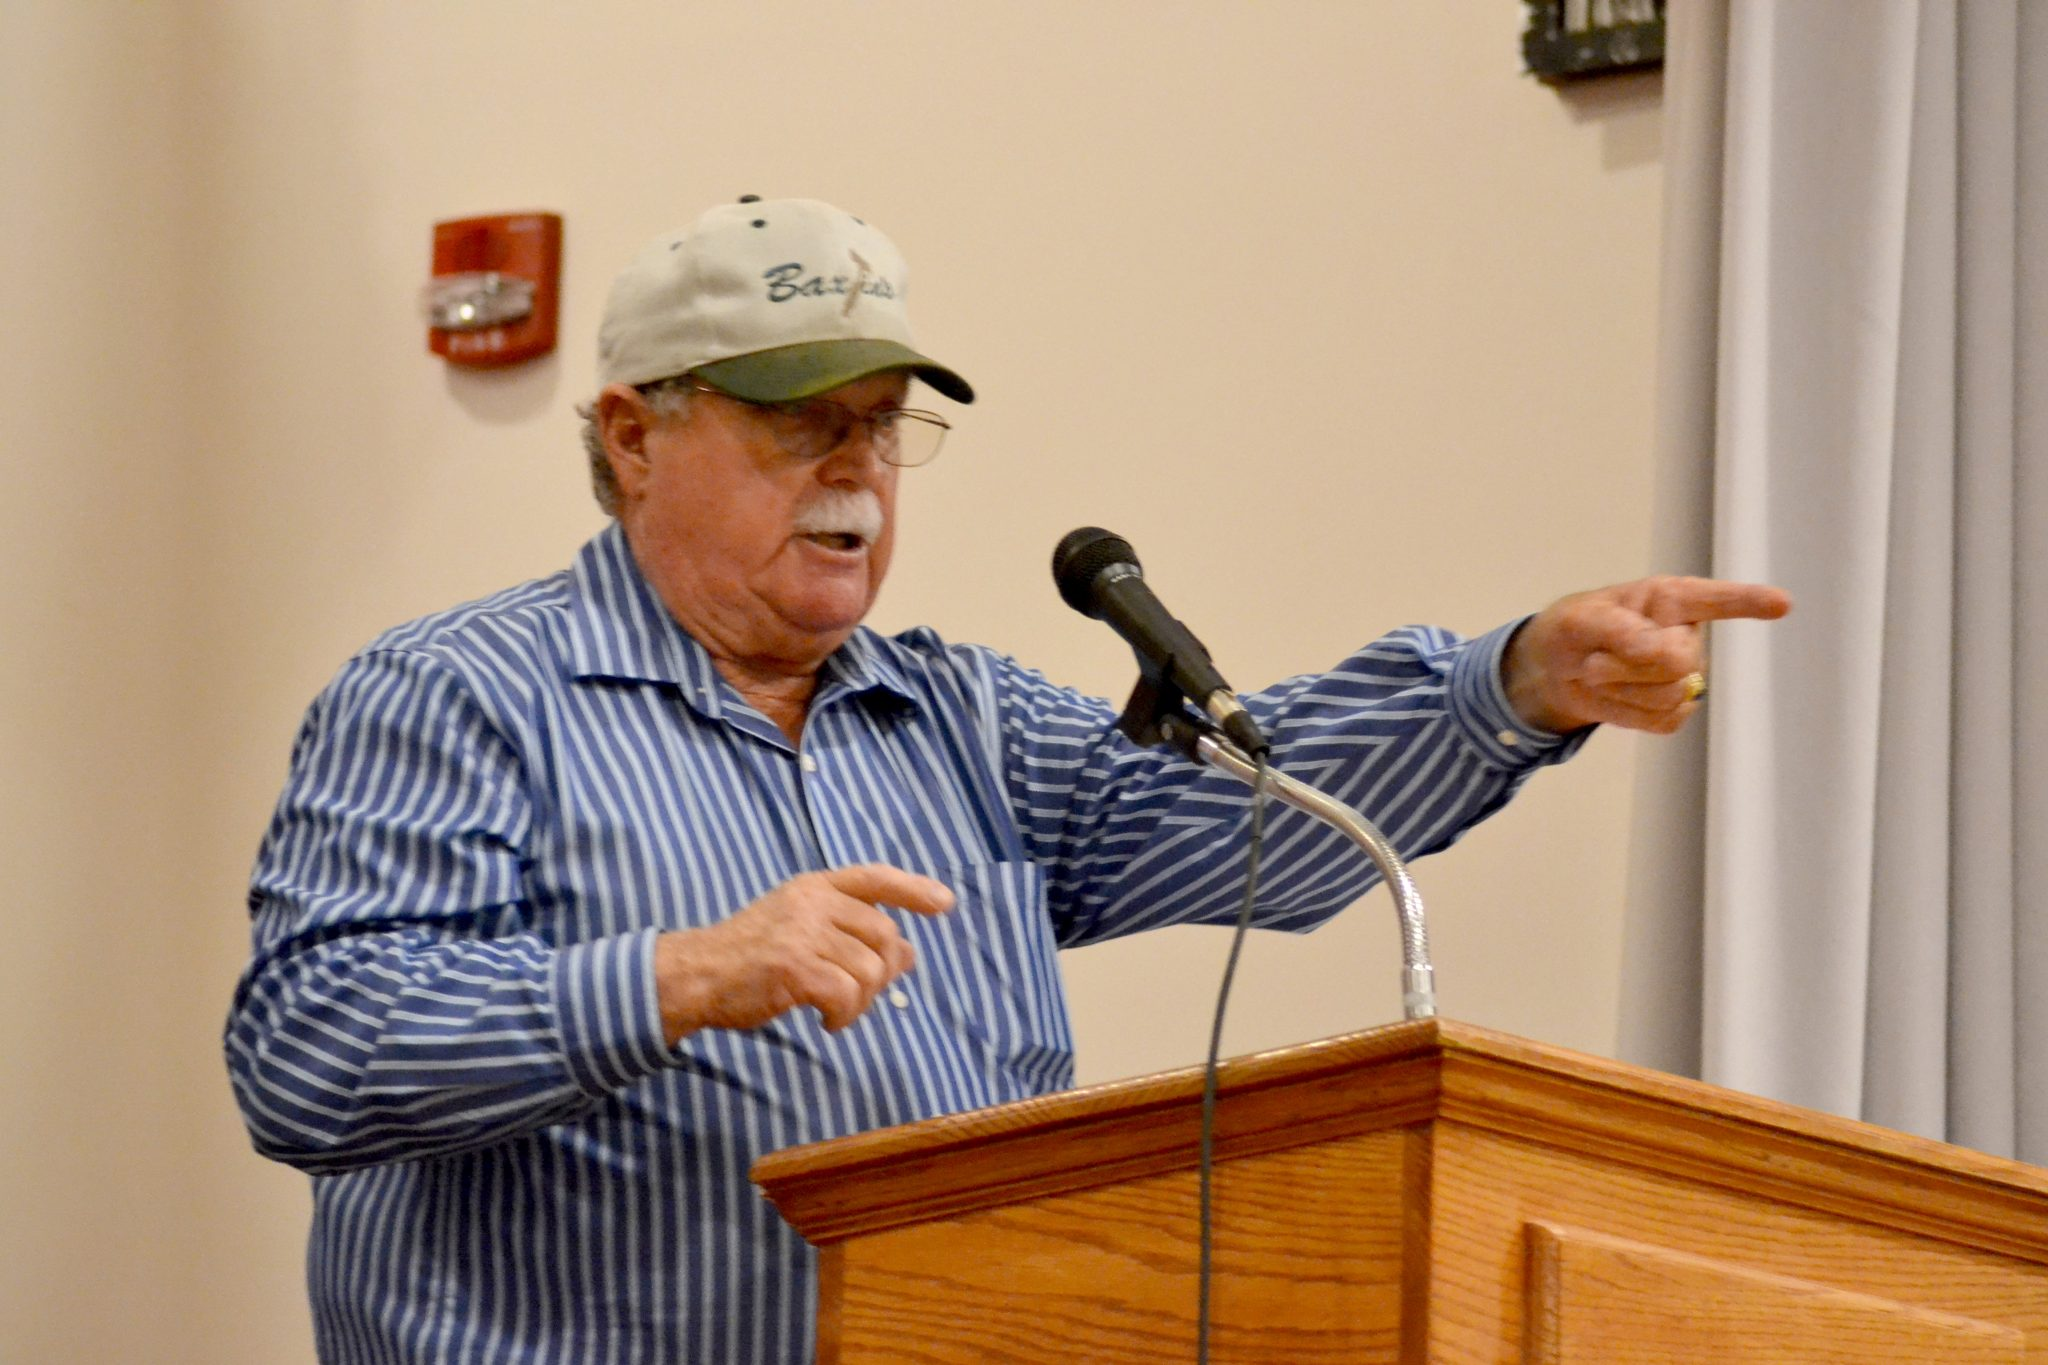 County offloads some parcels, keeps others